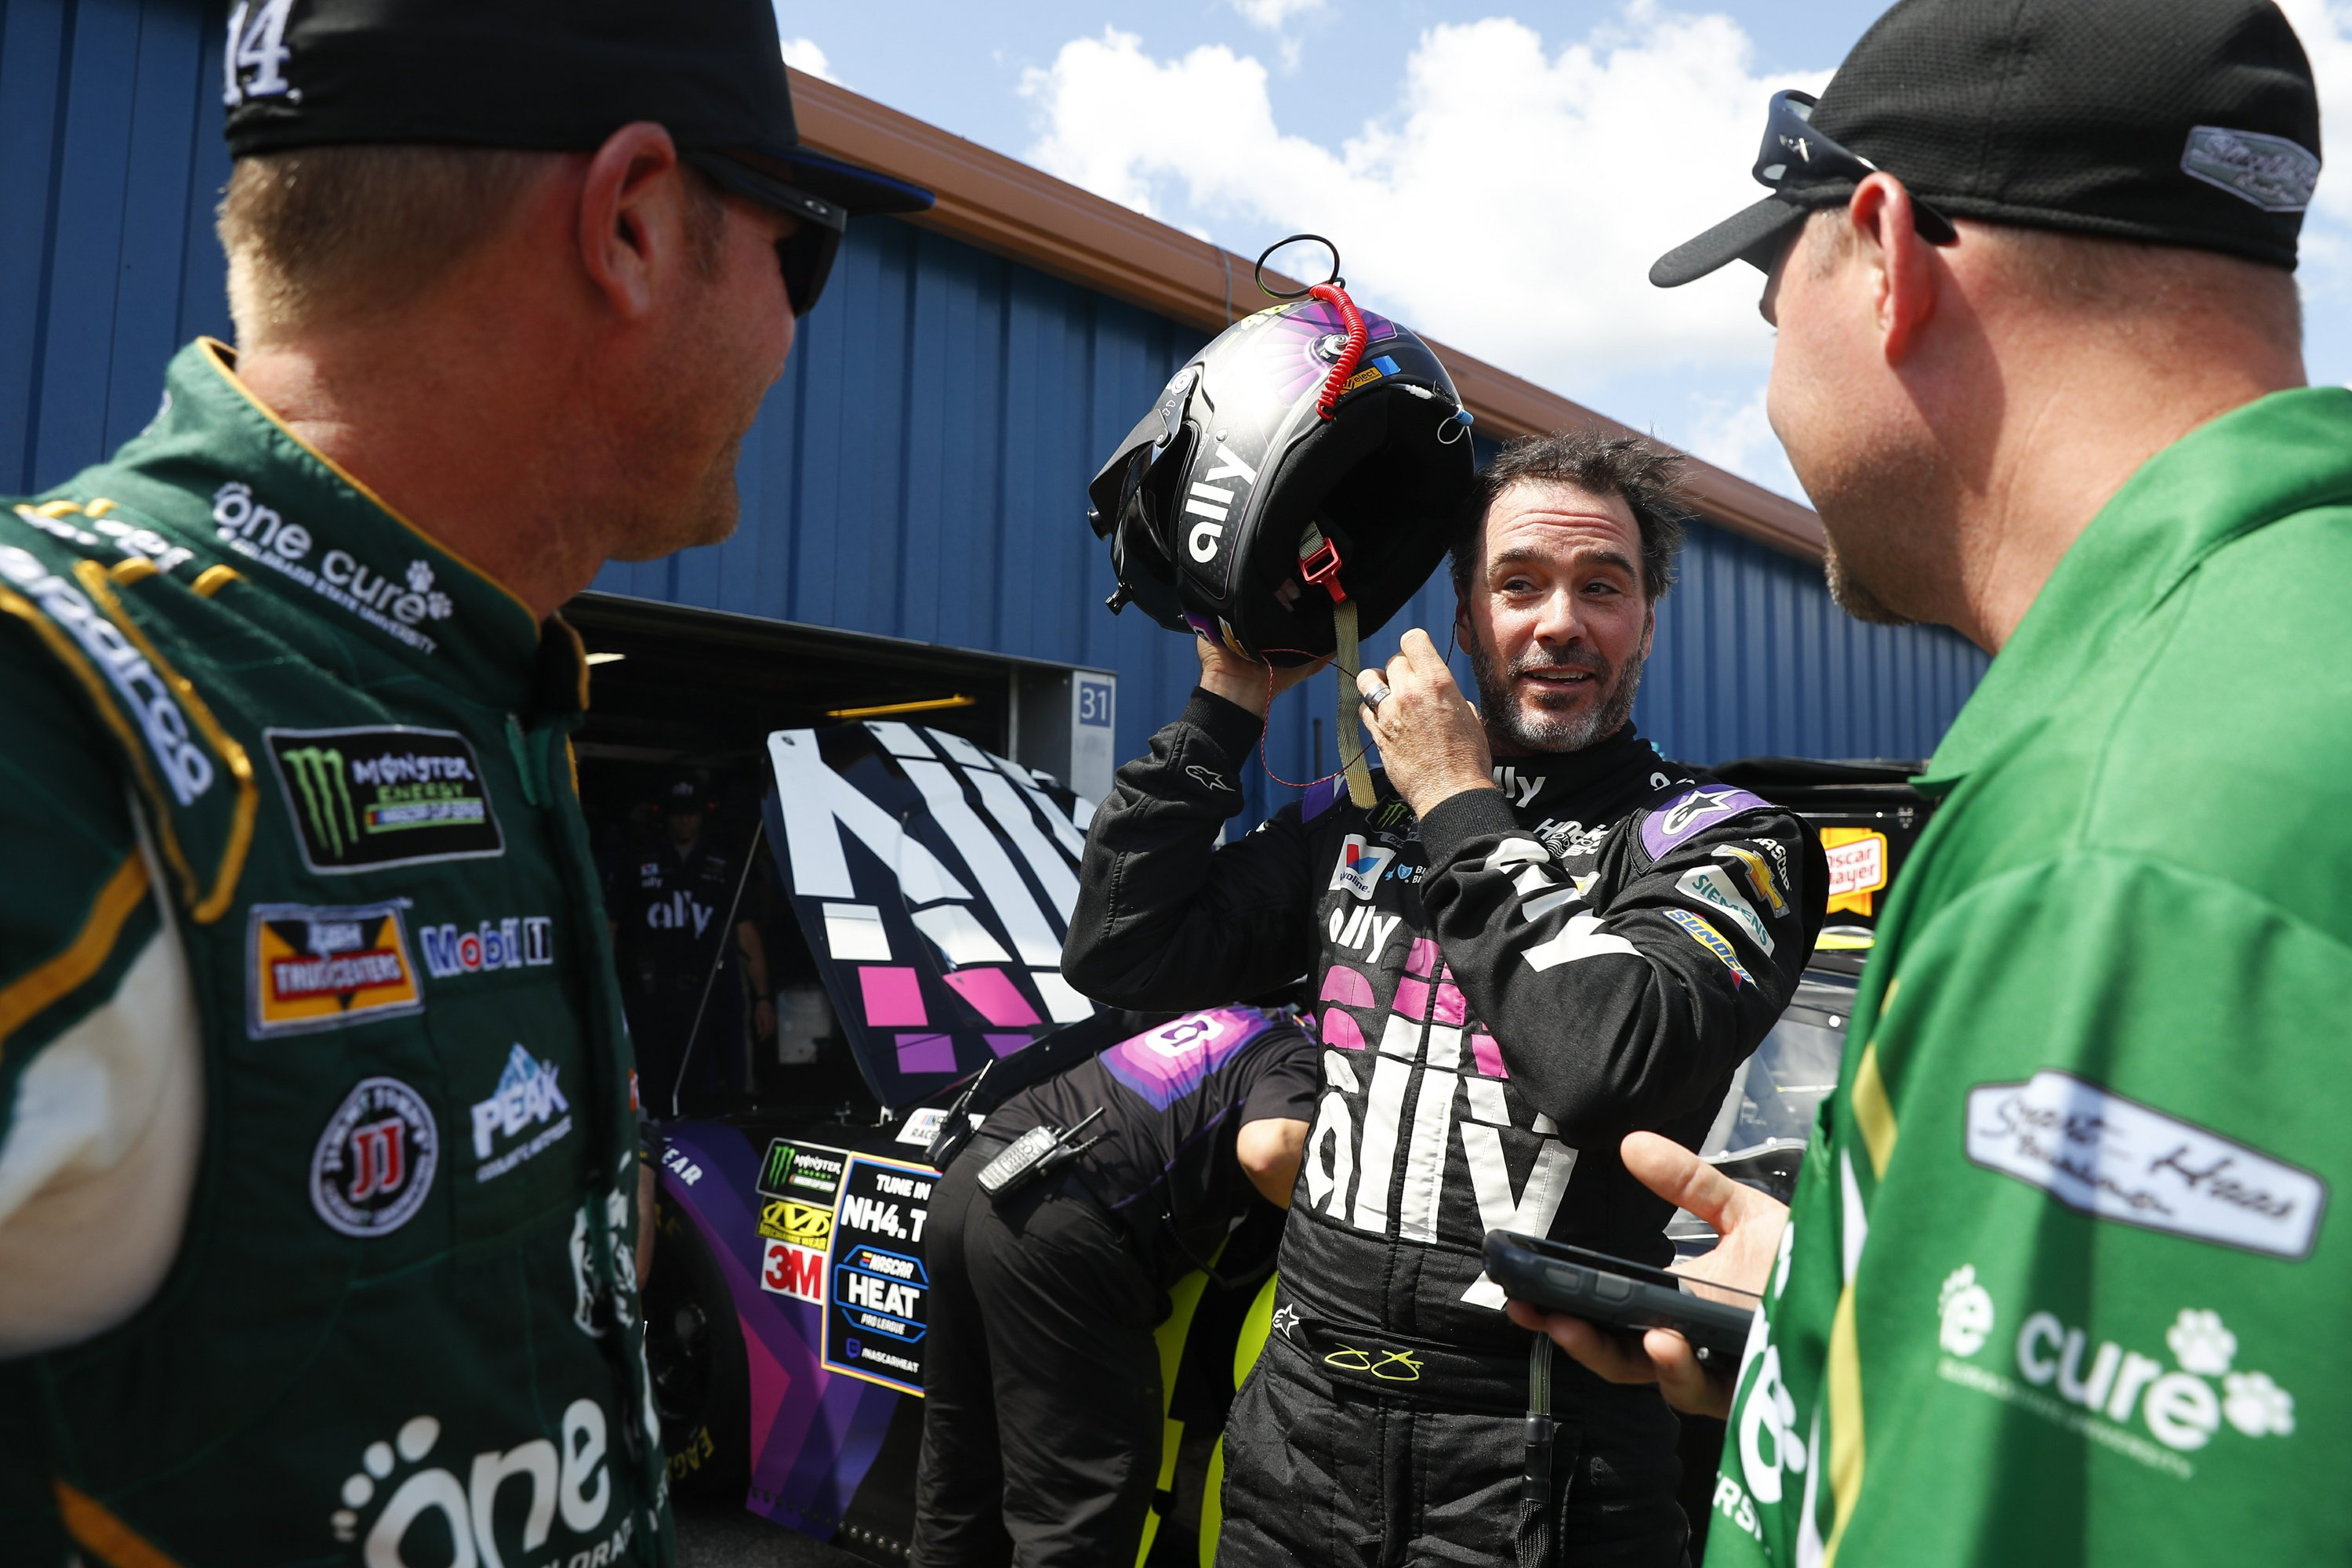 NASCAR drivers pushing limits on track, pointing fingers – The Associated Press